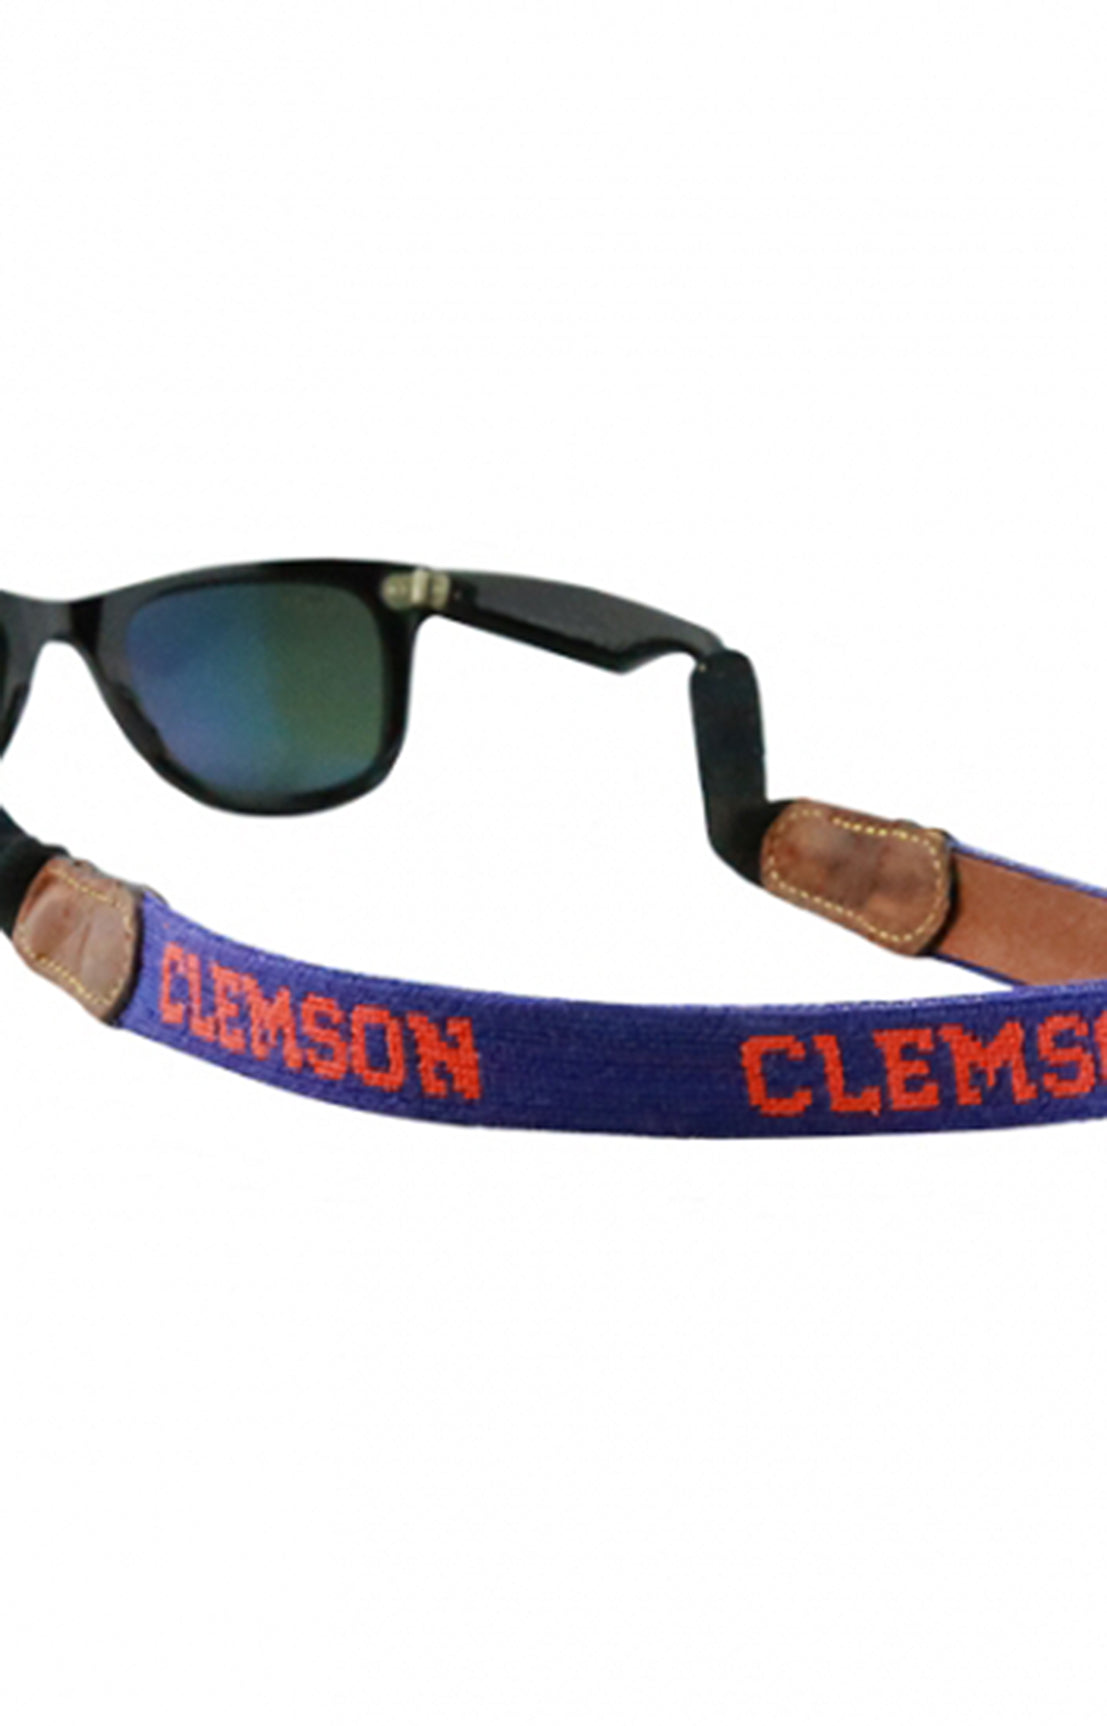 CLEMSON SUNGLASS STRAP - PURPLE